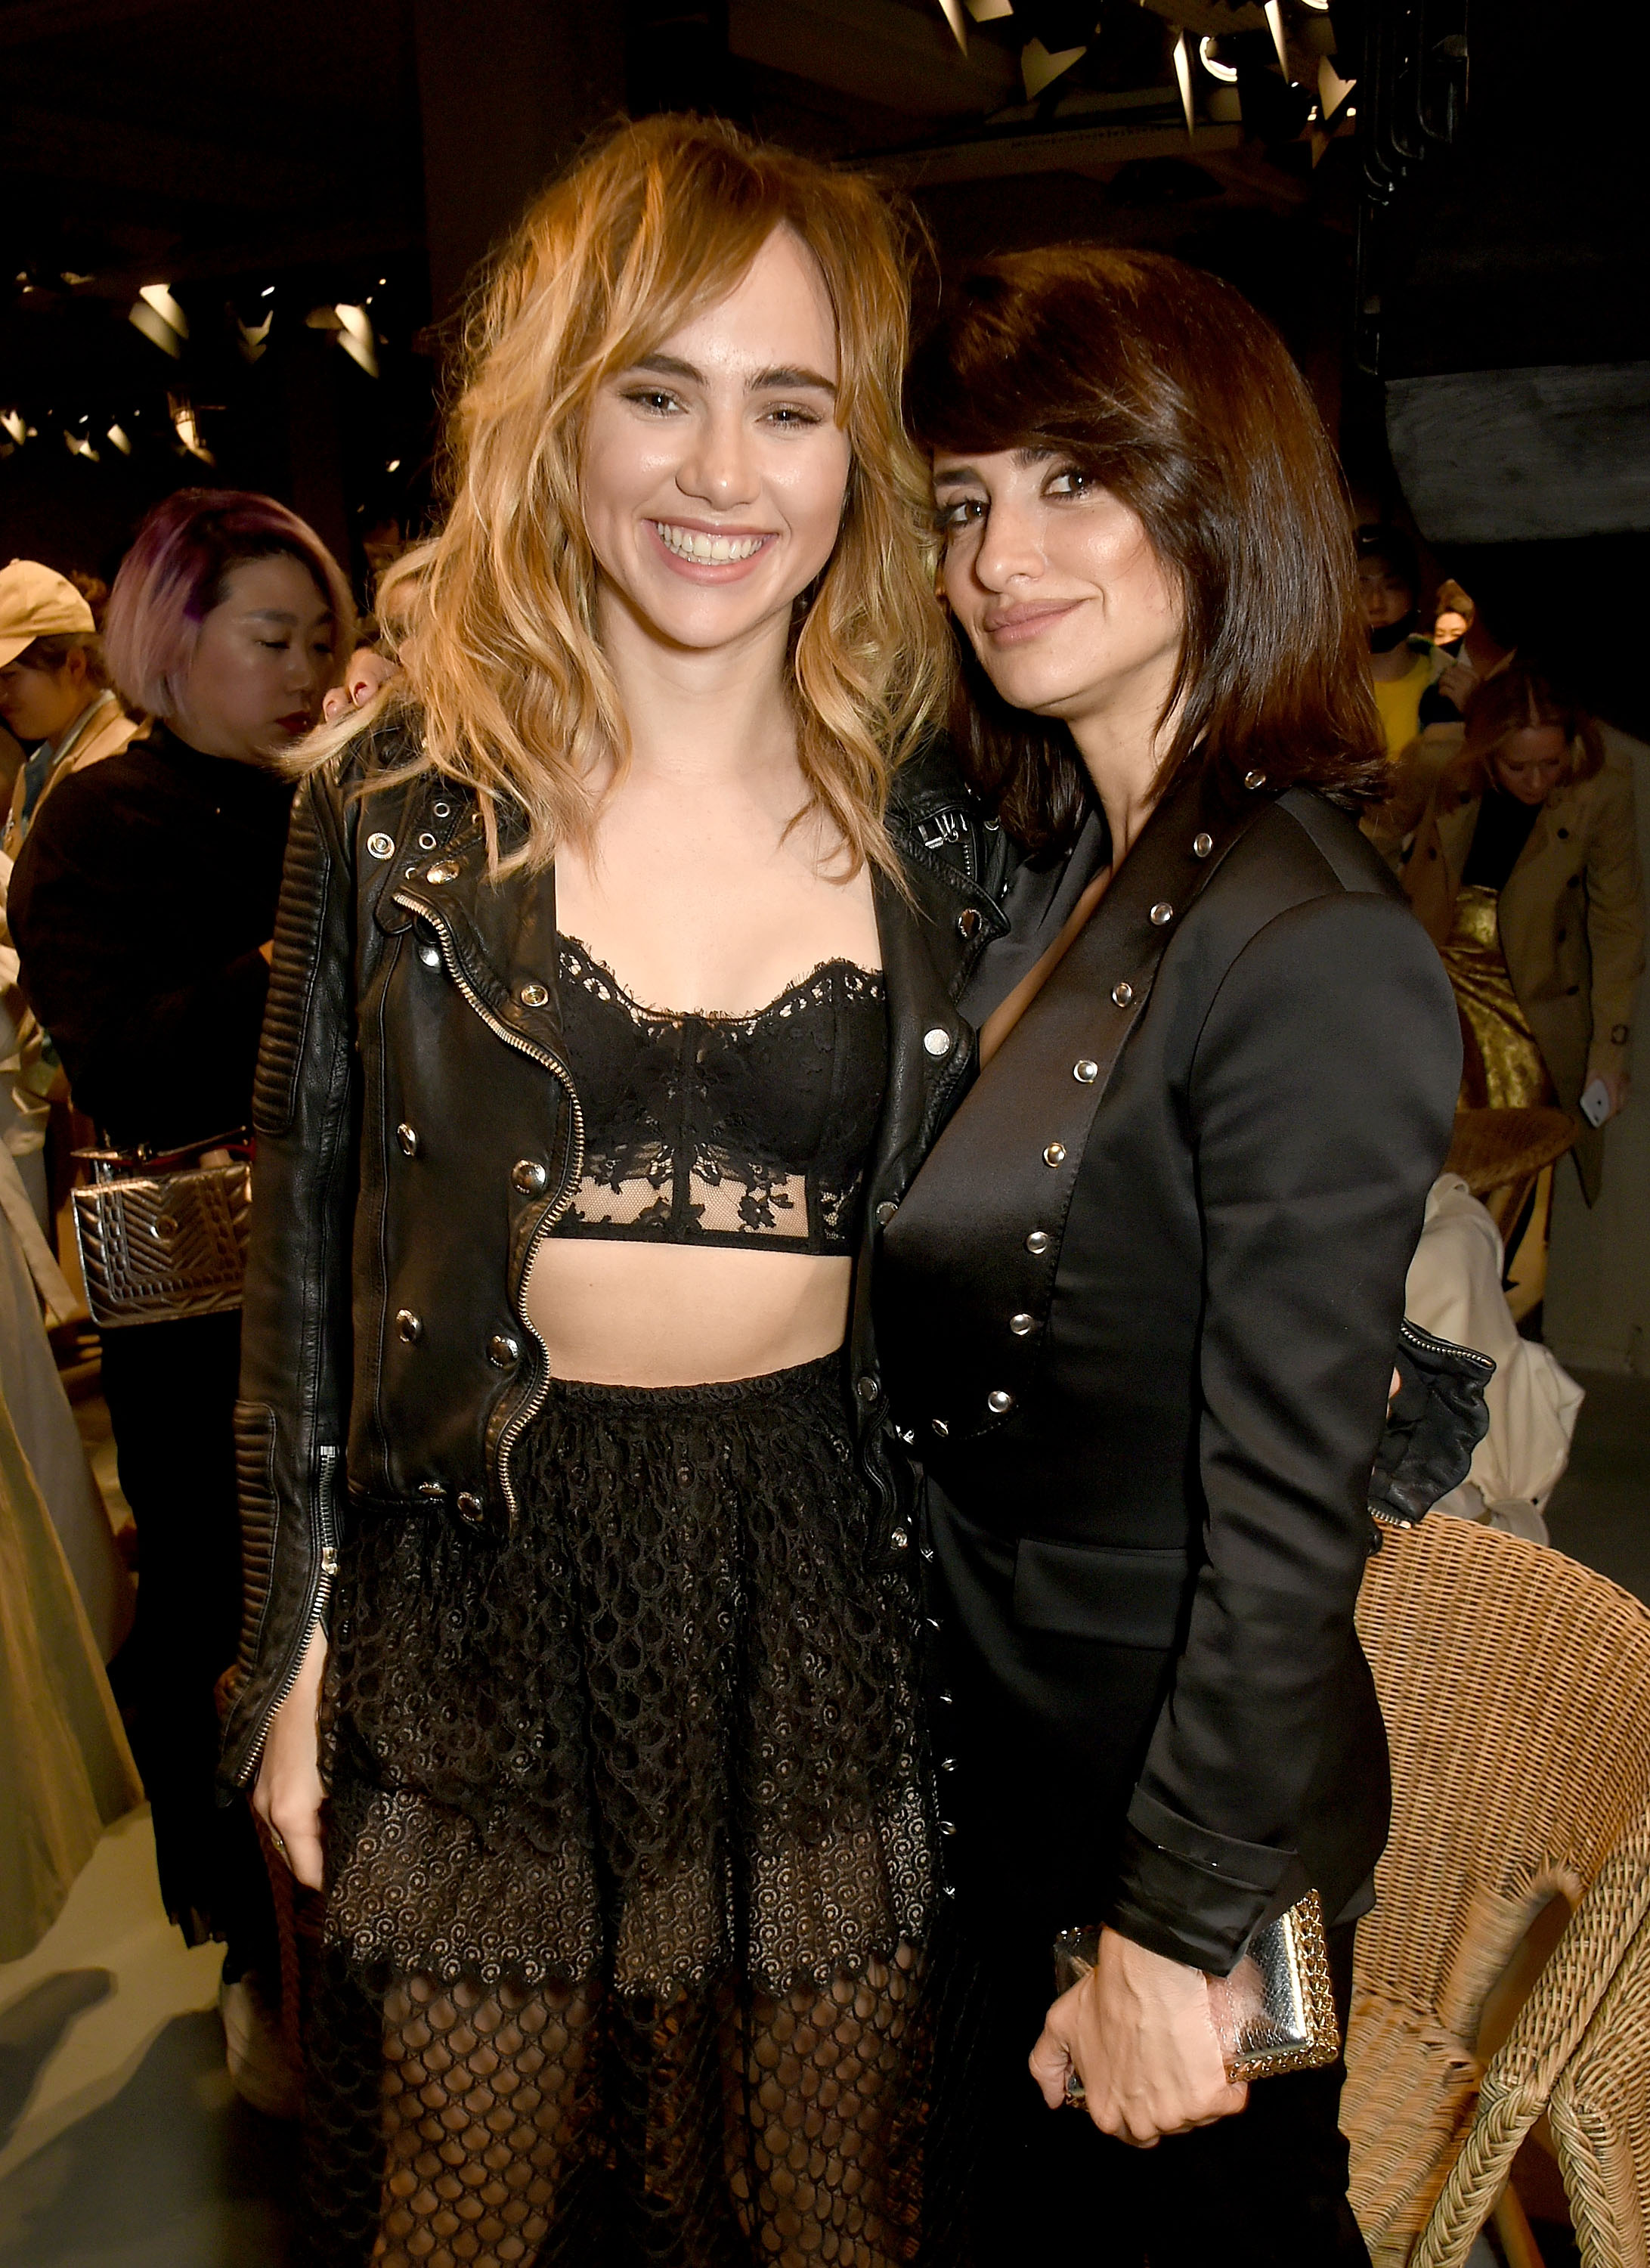 LONDON, ENGLAND - FEBRUARY 20:  (L-R) Suki Waterhouse and Penelope Cruz wearing Burberry attend the Burberry February 2017 Show during London Fashion Week February 2017 at Makers House on February 20, 2017 in London, England.  (Photo by David M. Benett/Dave Benett/Getty Images for Burberry) *** Local Caption *** Suki Waterhouse; Penelope Cruz